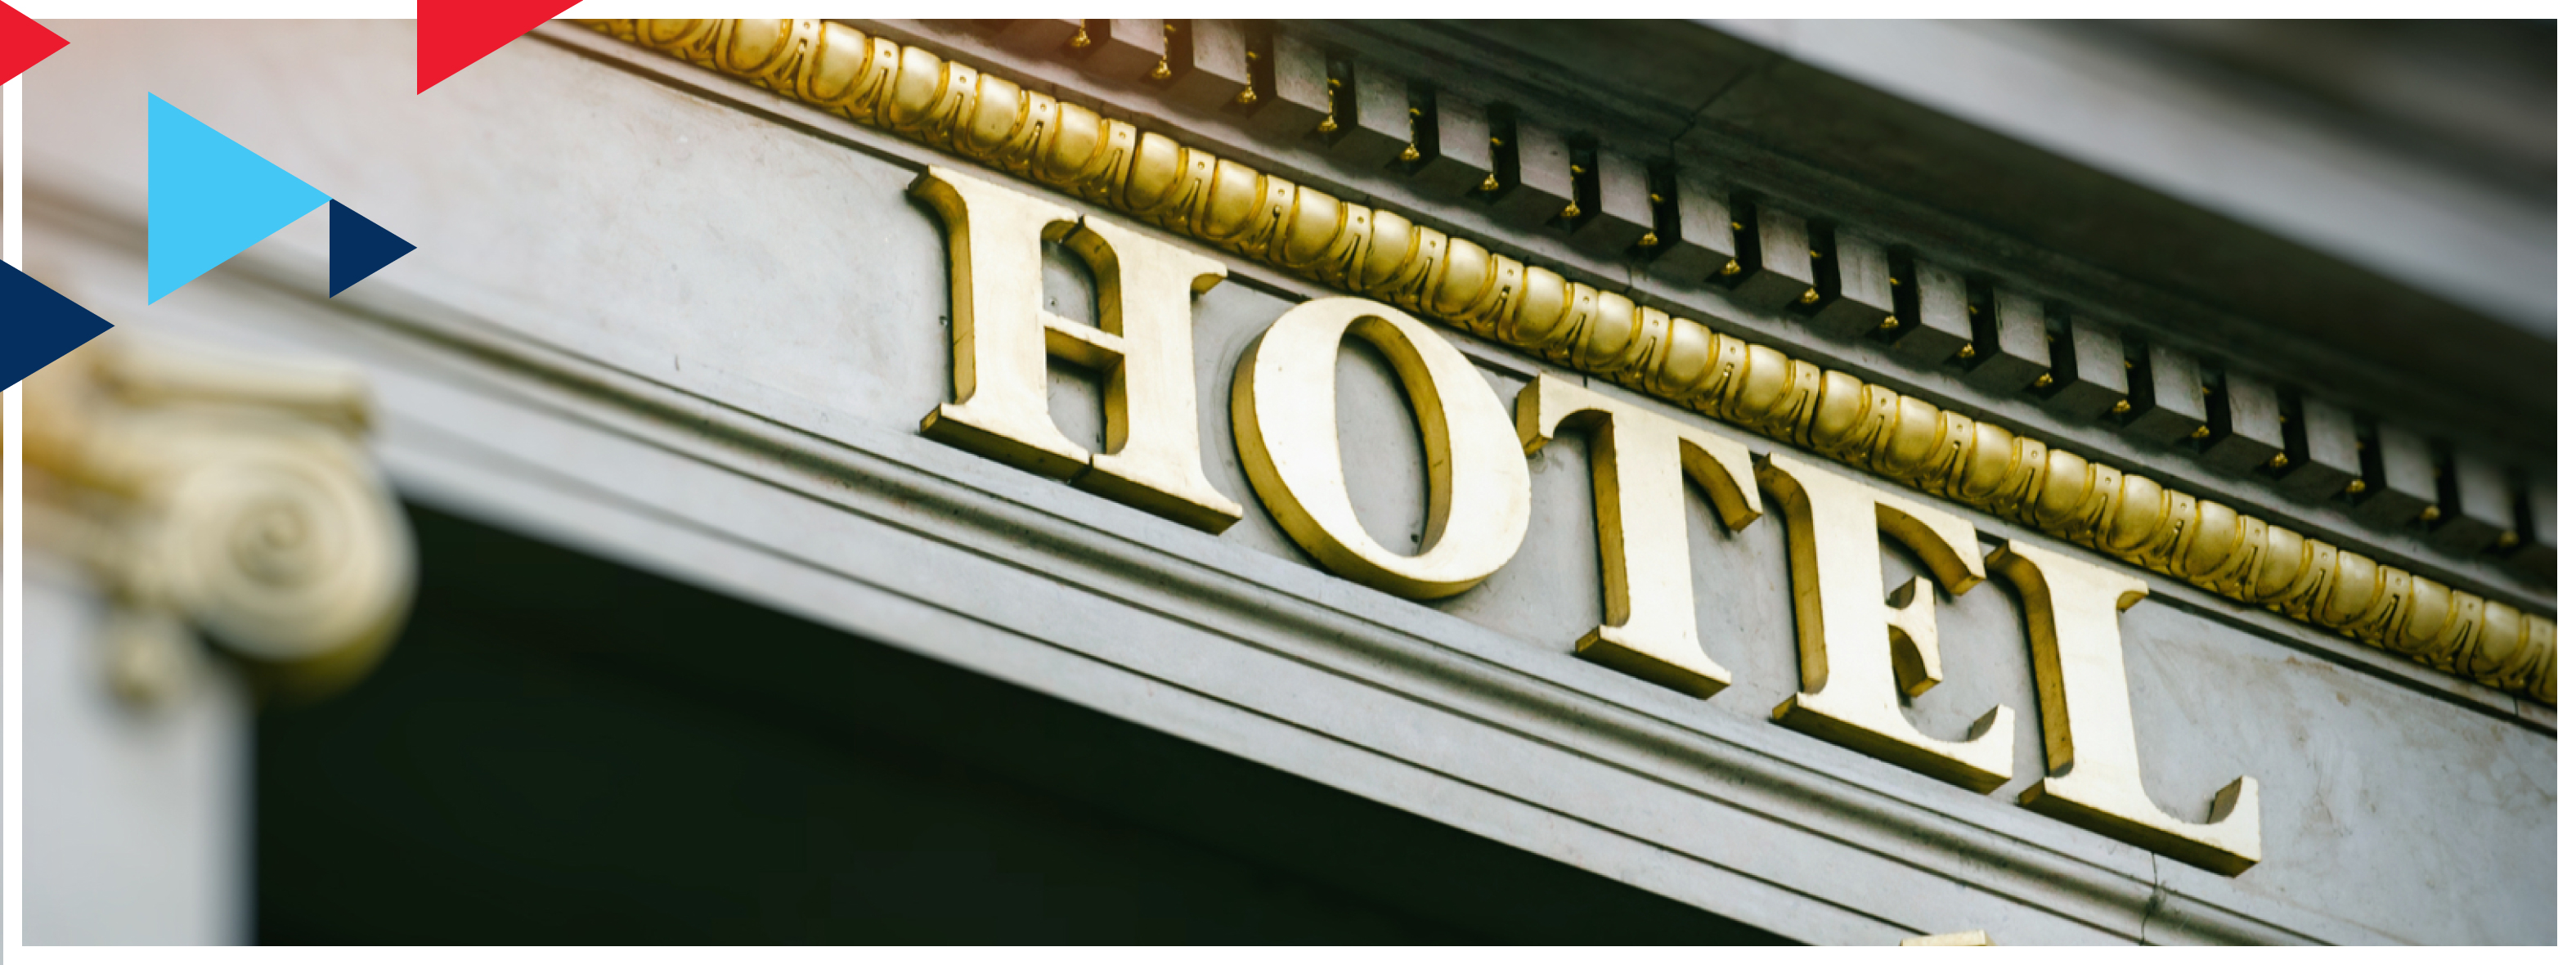 Terms on Hotel